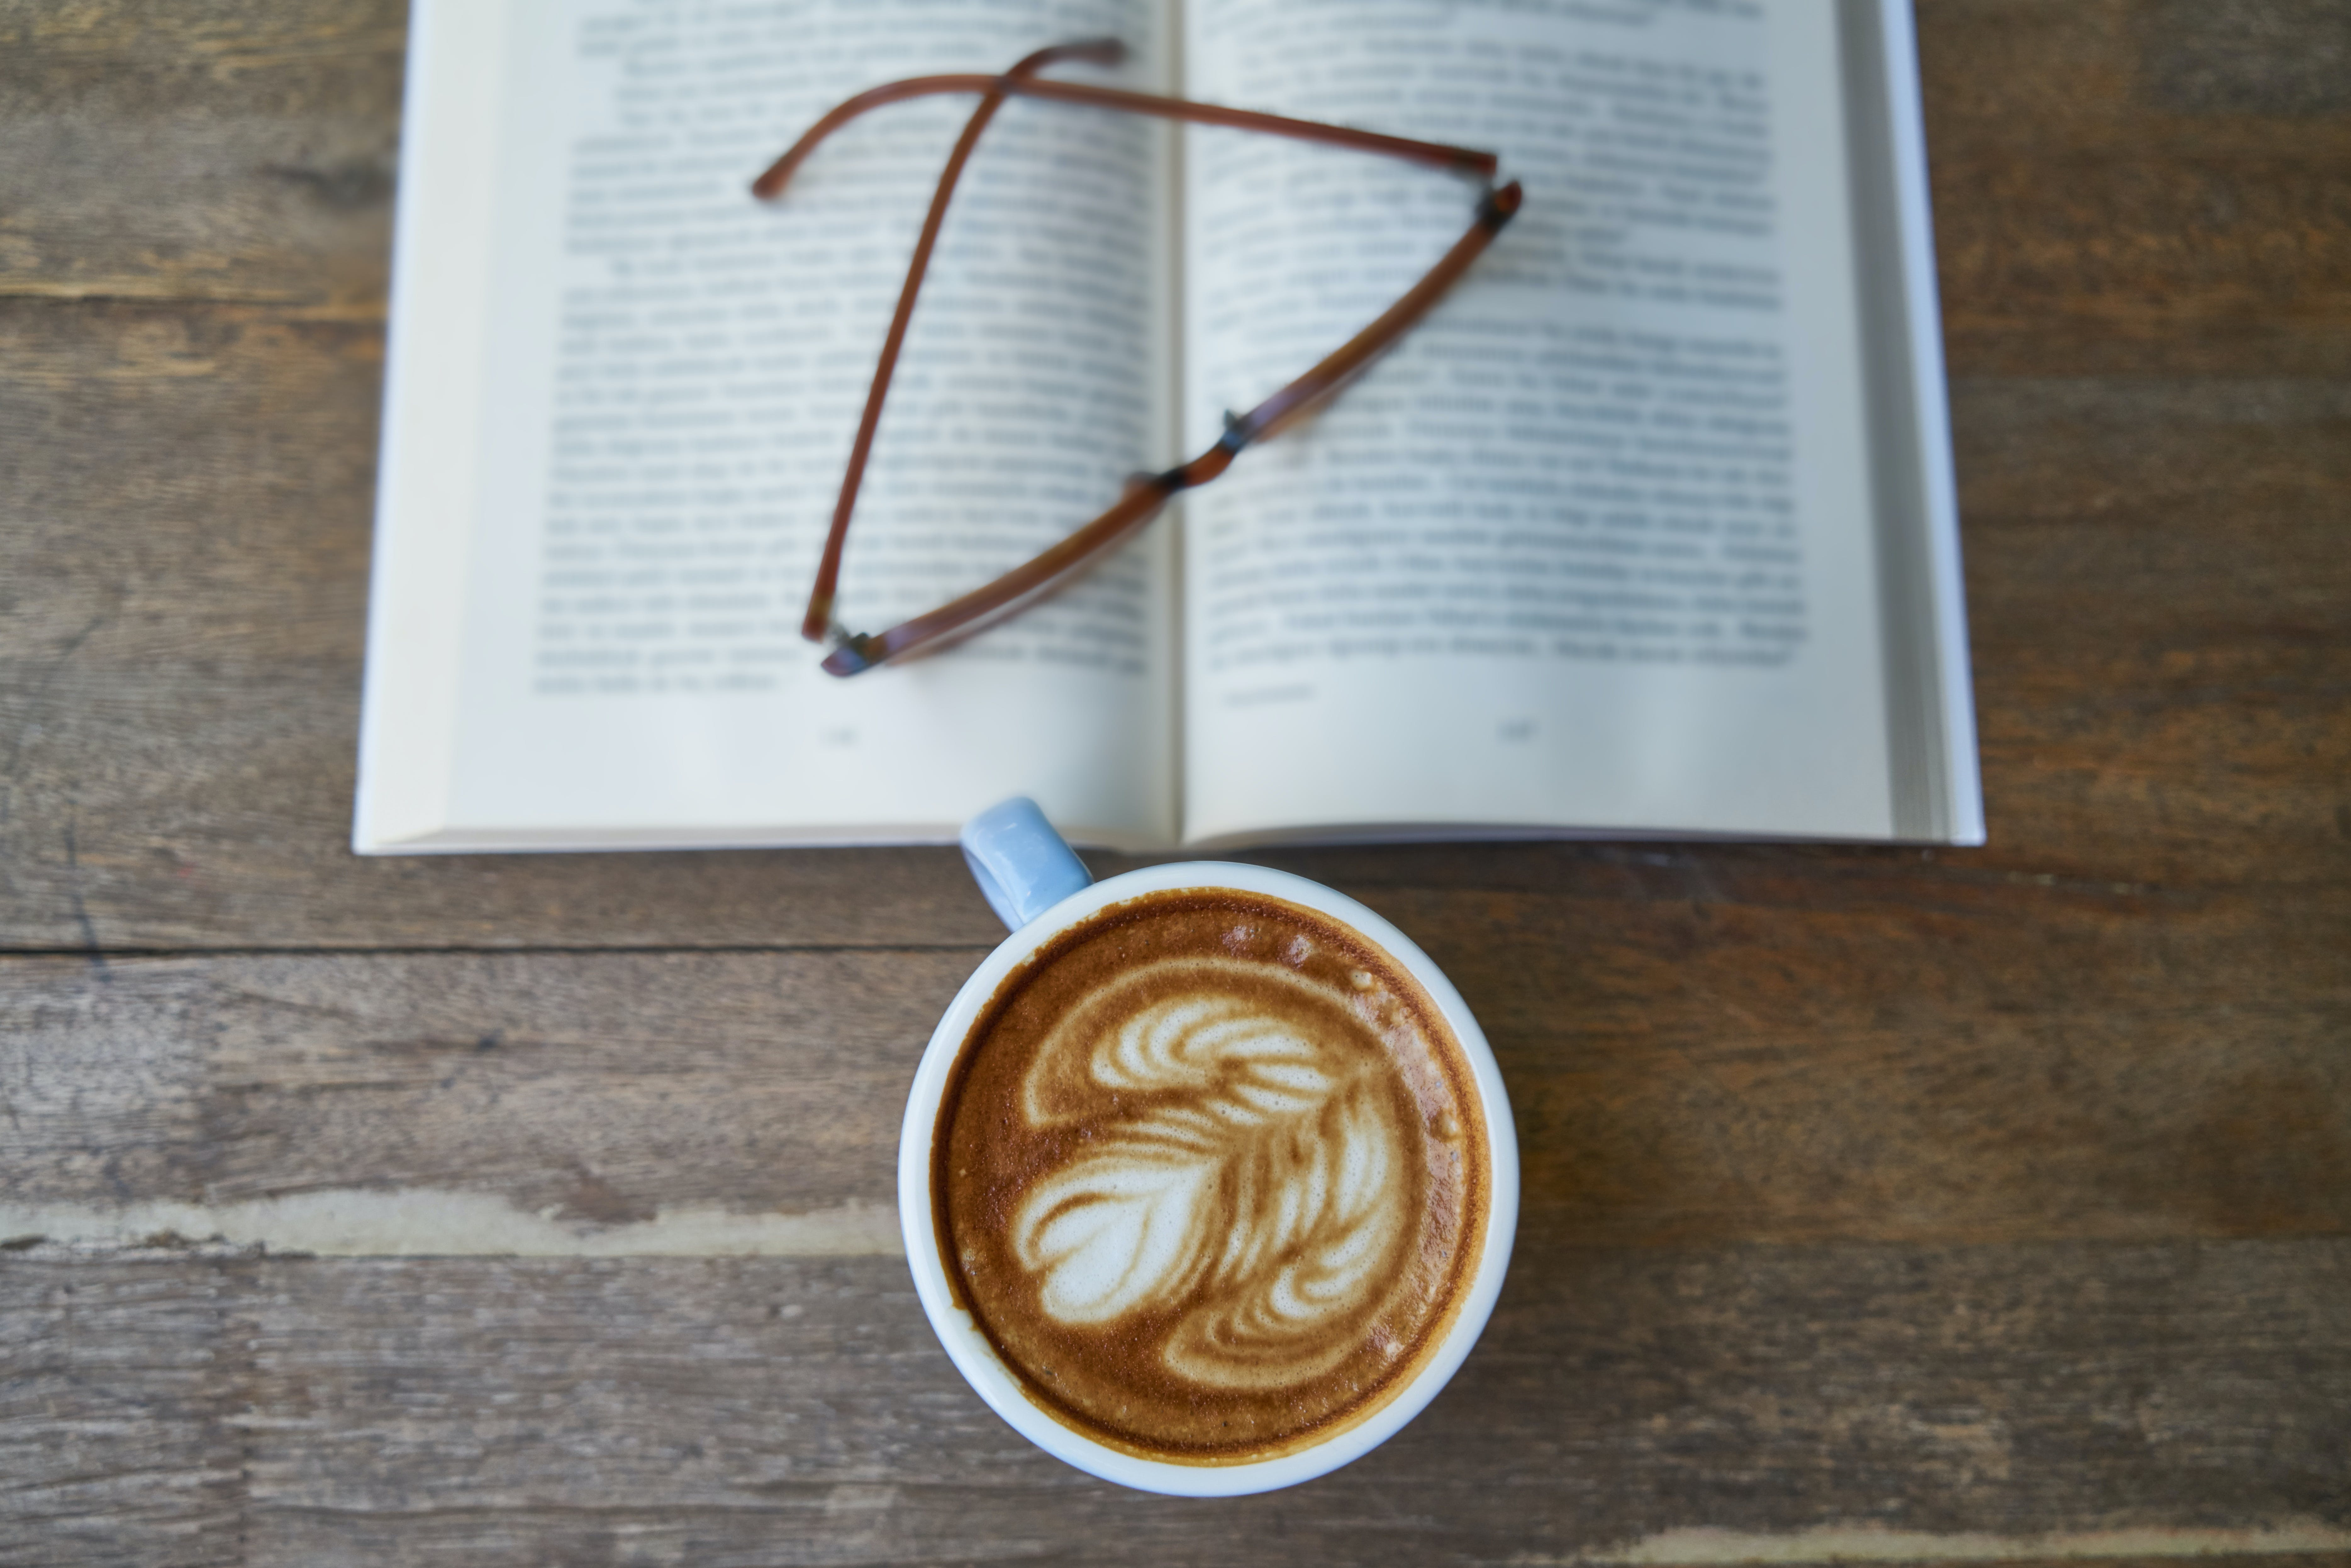 White Ceramic Mug Beside Eyeglasses Under the Book